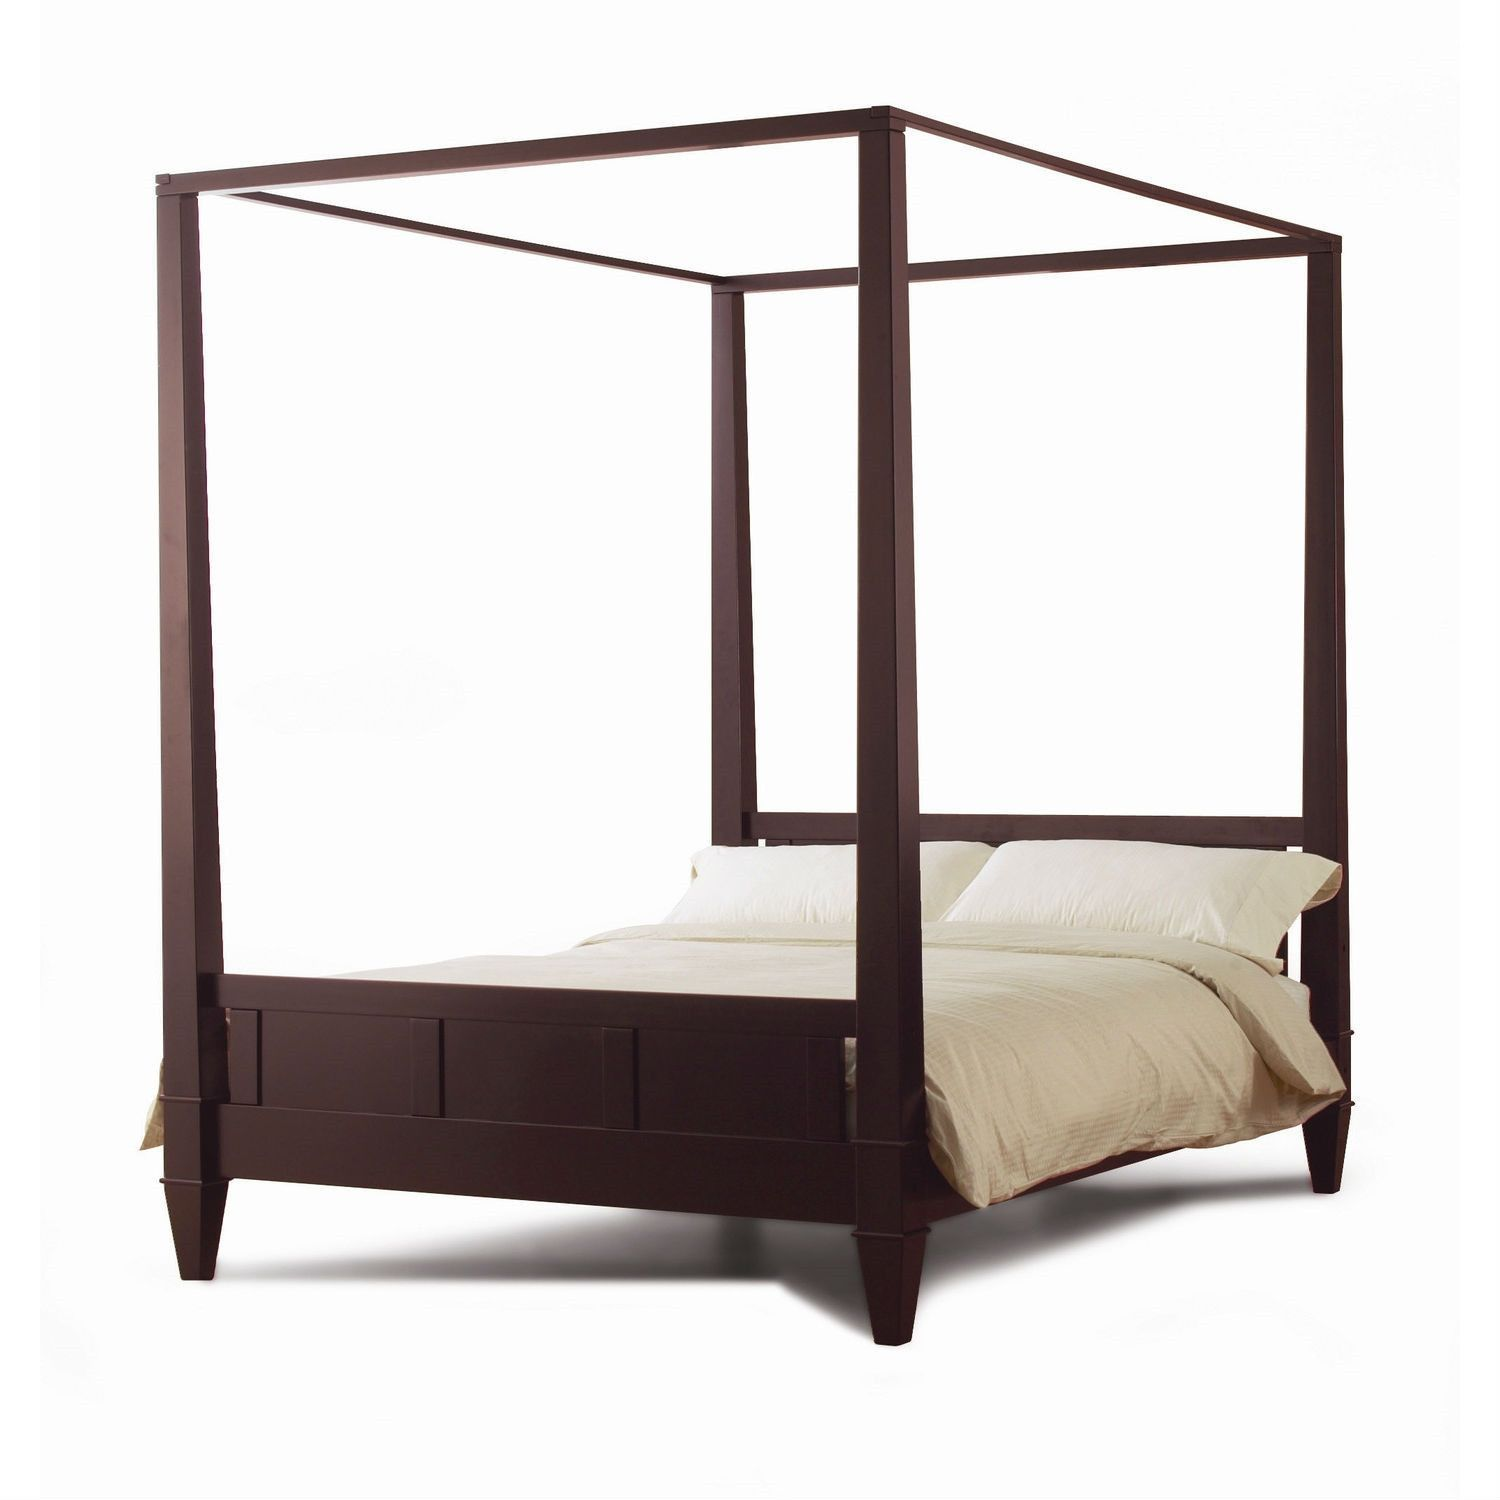 Queen Size Modern Canopy Bed Frame in Dark Brown Wood Finish ...